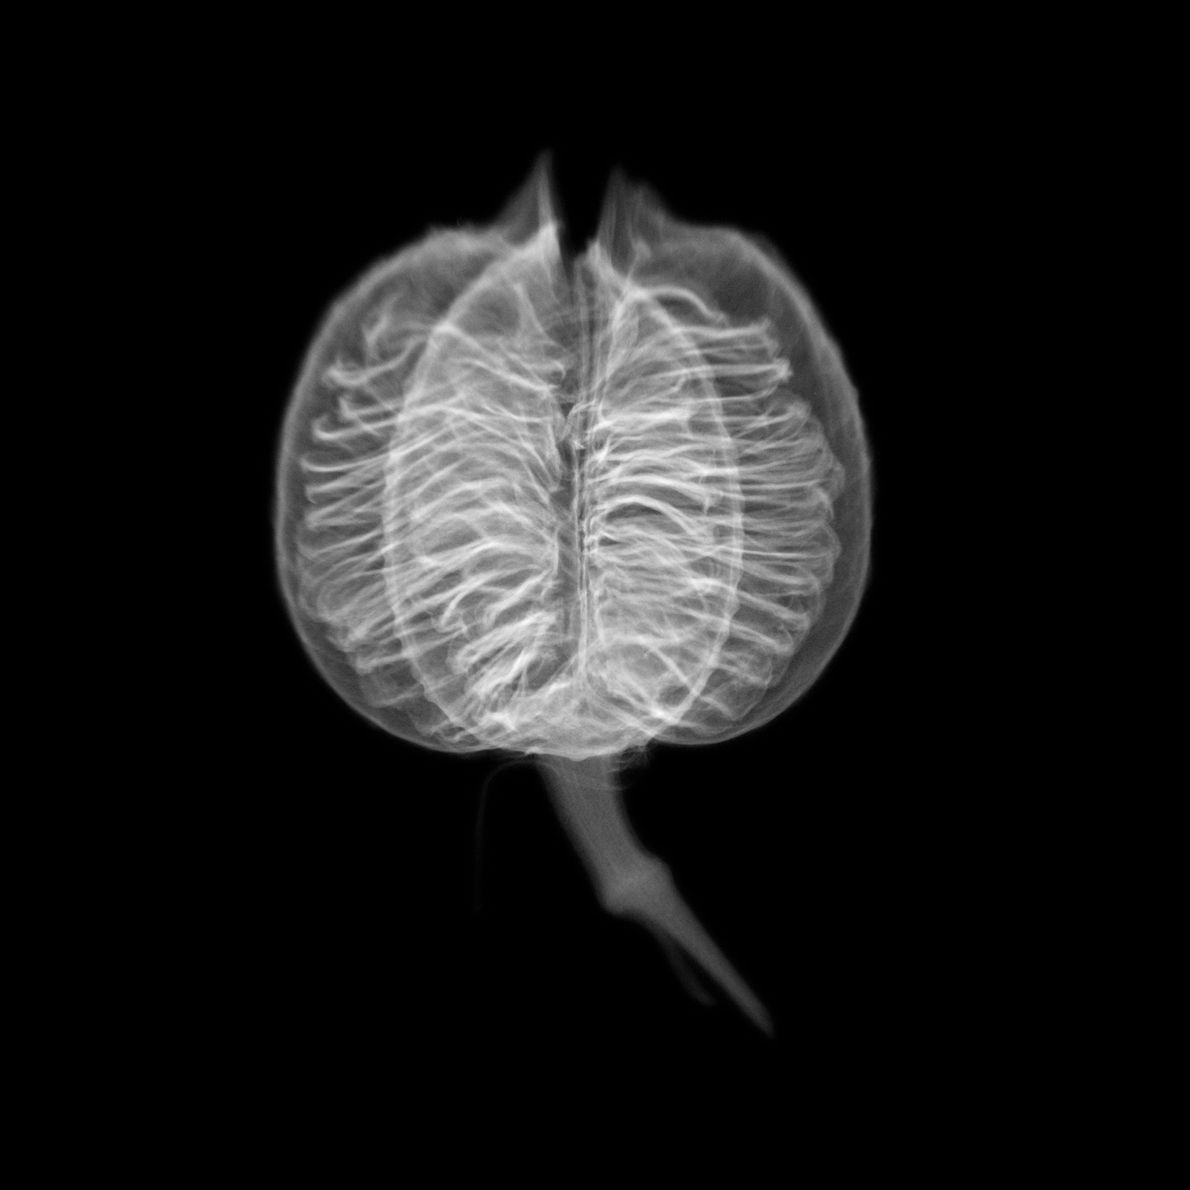 Doherty created this x-ray view of a red yucca seed head because its internal structure reminded ...